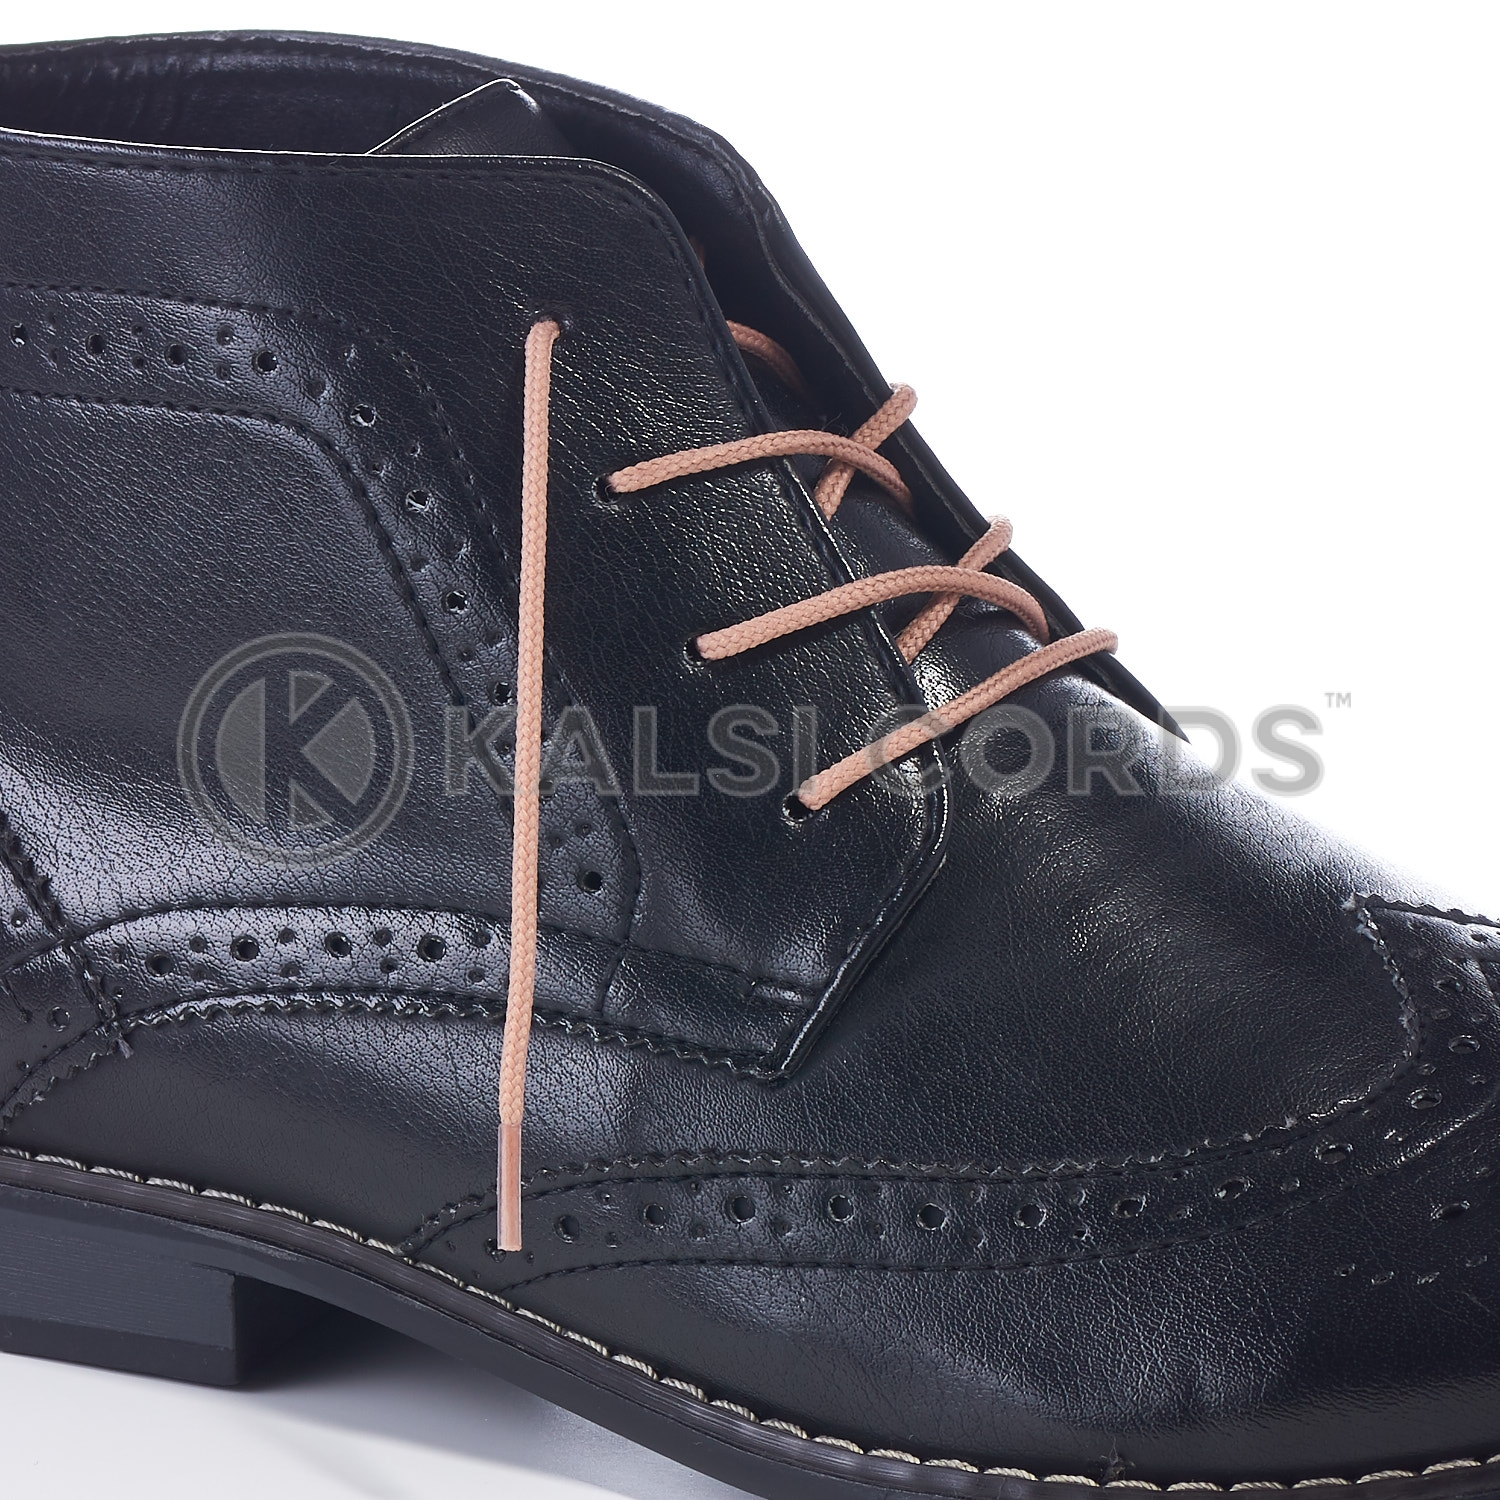 T460 2mm Thin Fine Round Cord Shoe Laces Dark Beige PG659 Kids Trainers Adults Brogue Formal Boots Kalsi Cords